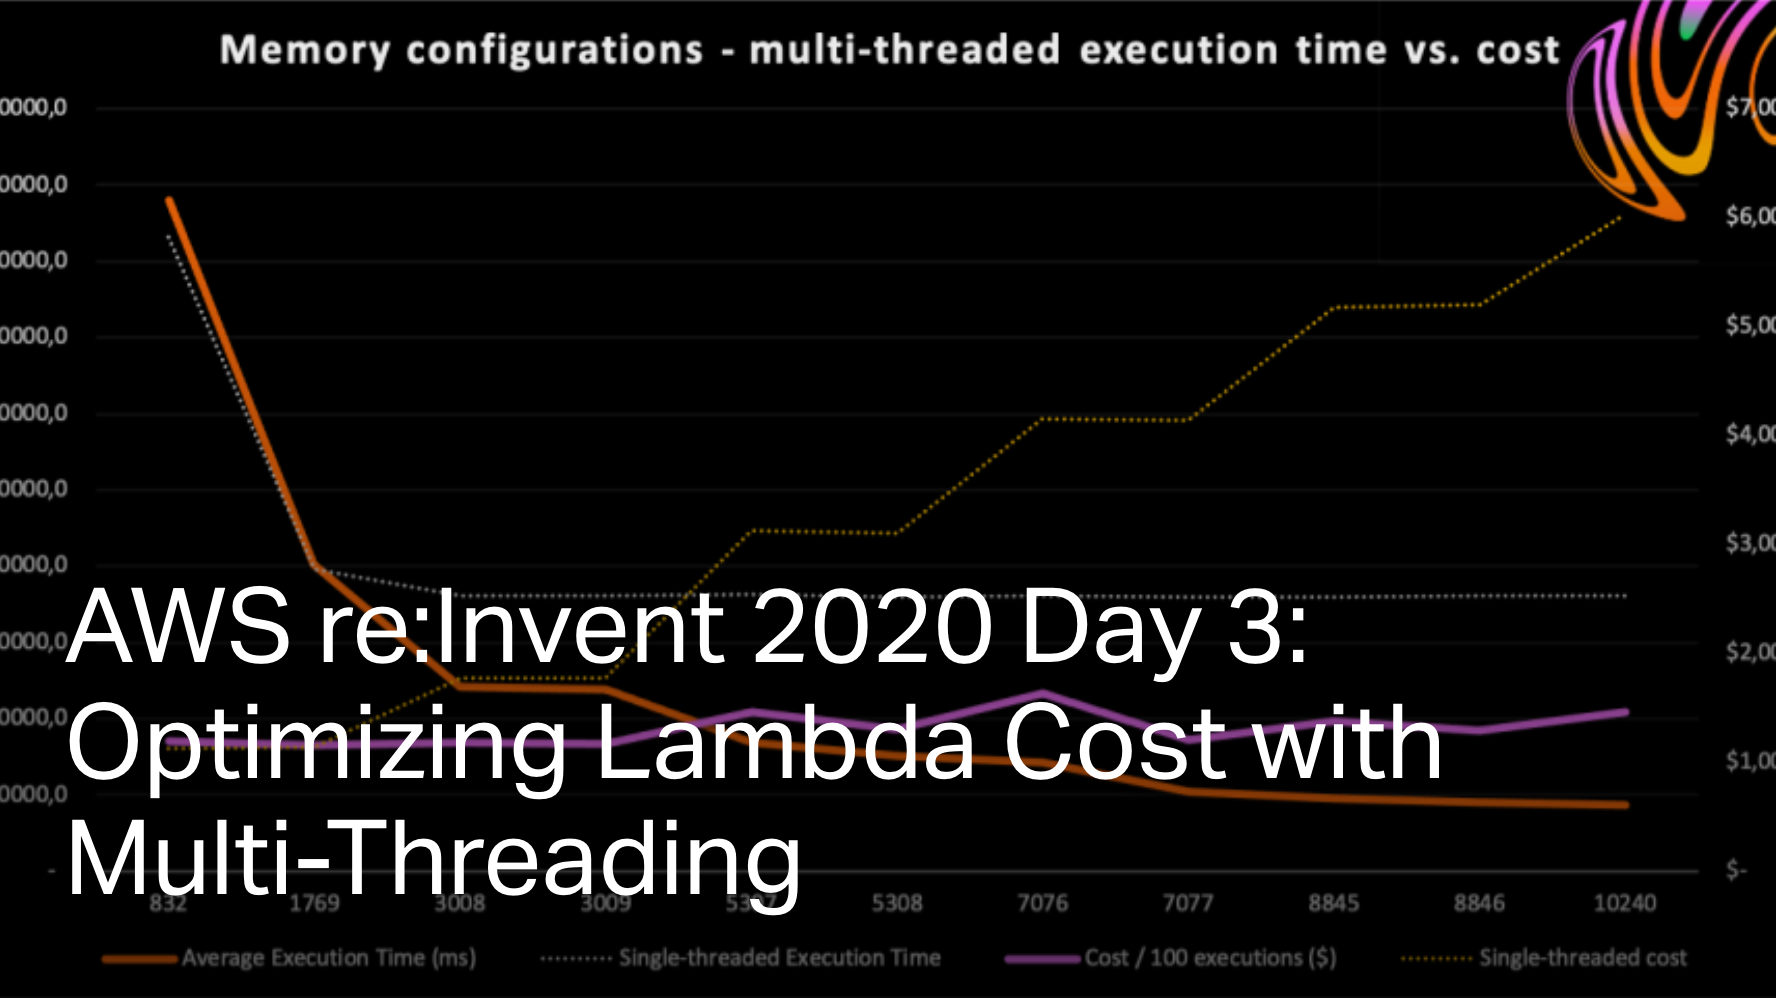 AWS re:Invent 2020 Day 3: Optimizing Lambda Cost with Multi-Threading